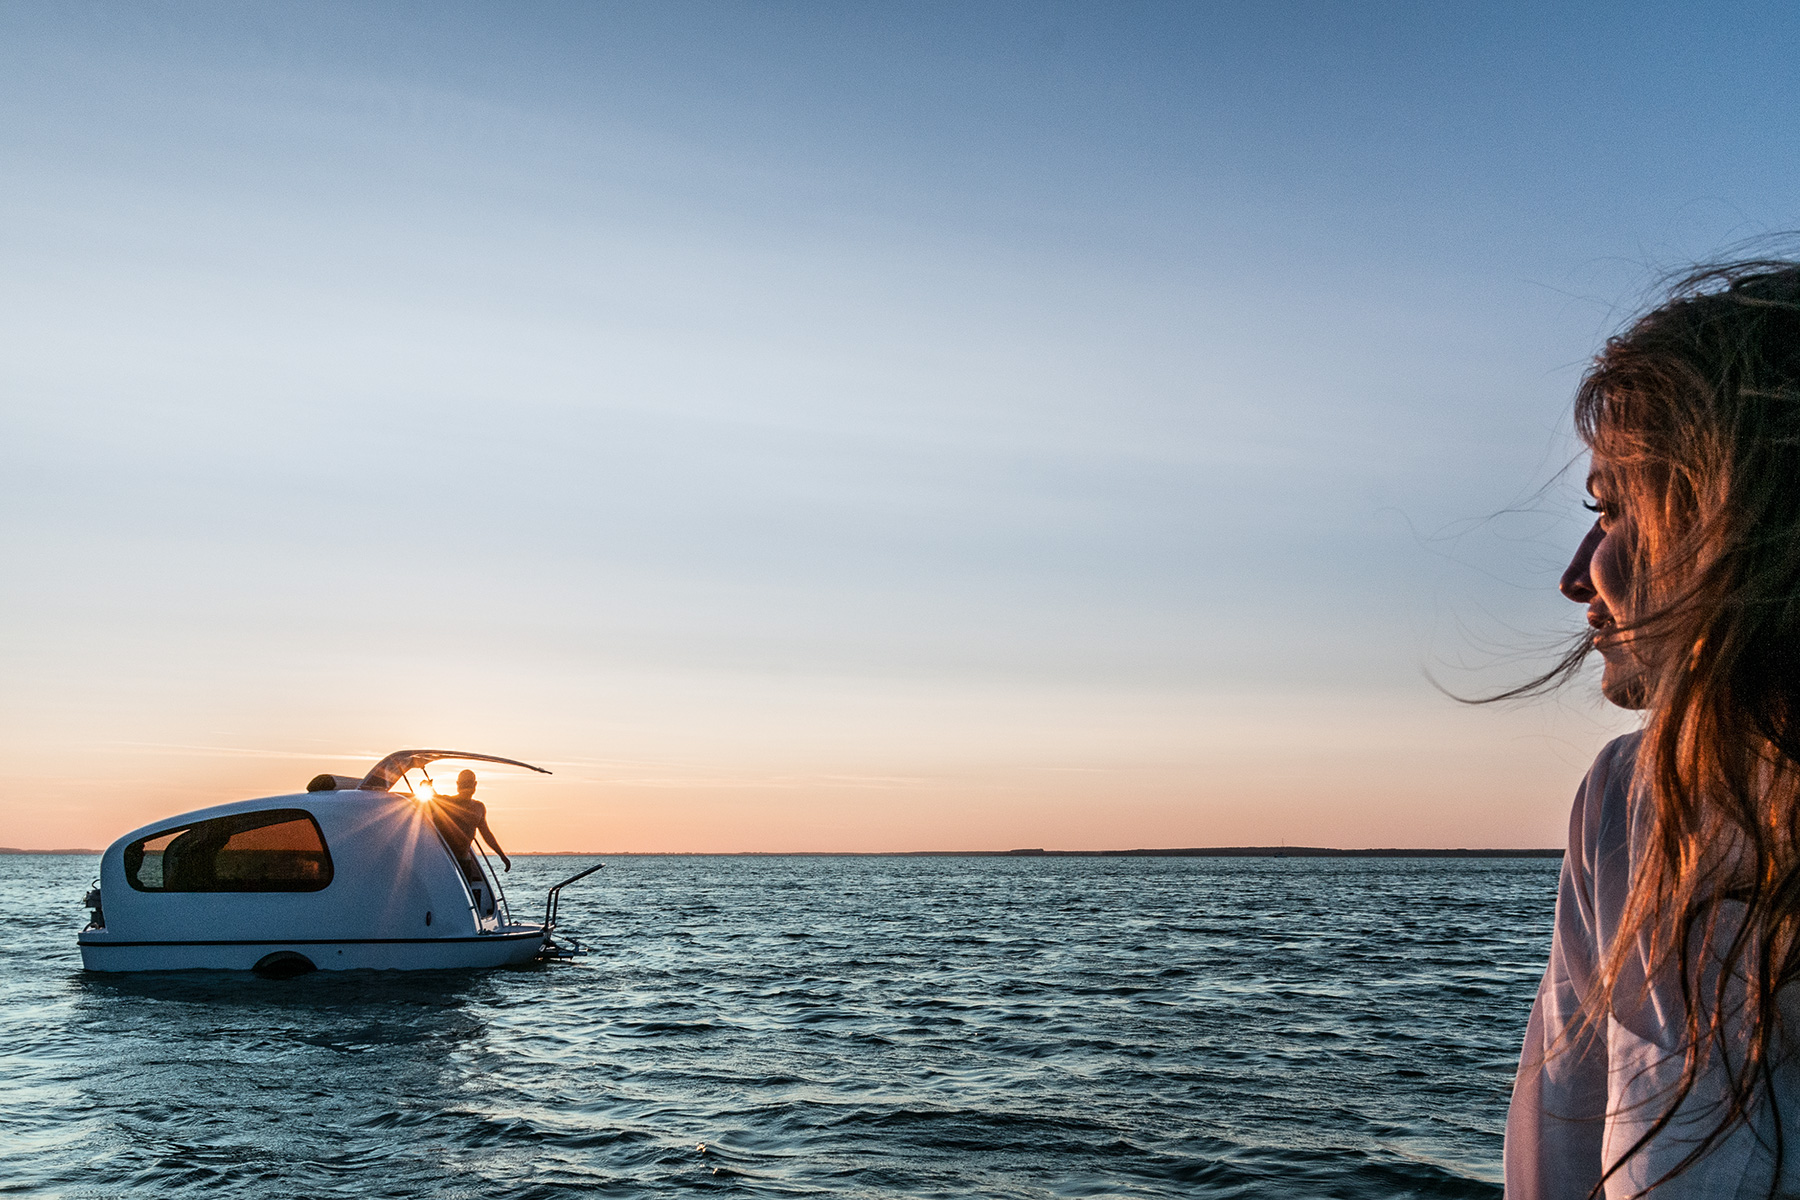 The Sealander Is a Mini RV That Doubles as a Yacht